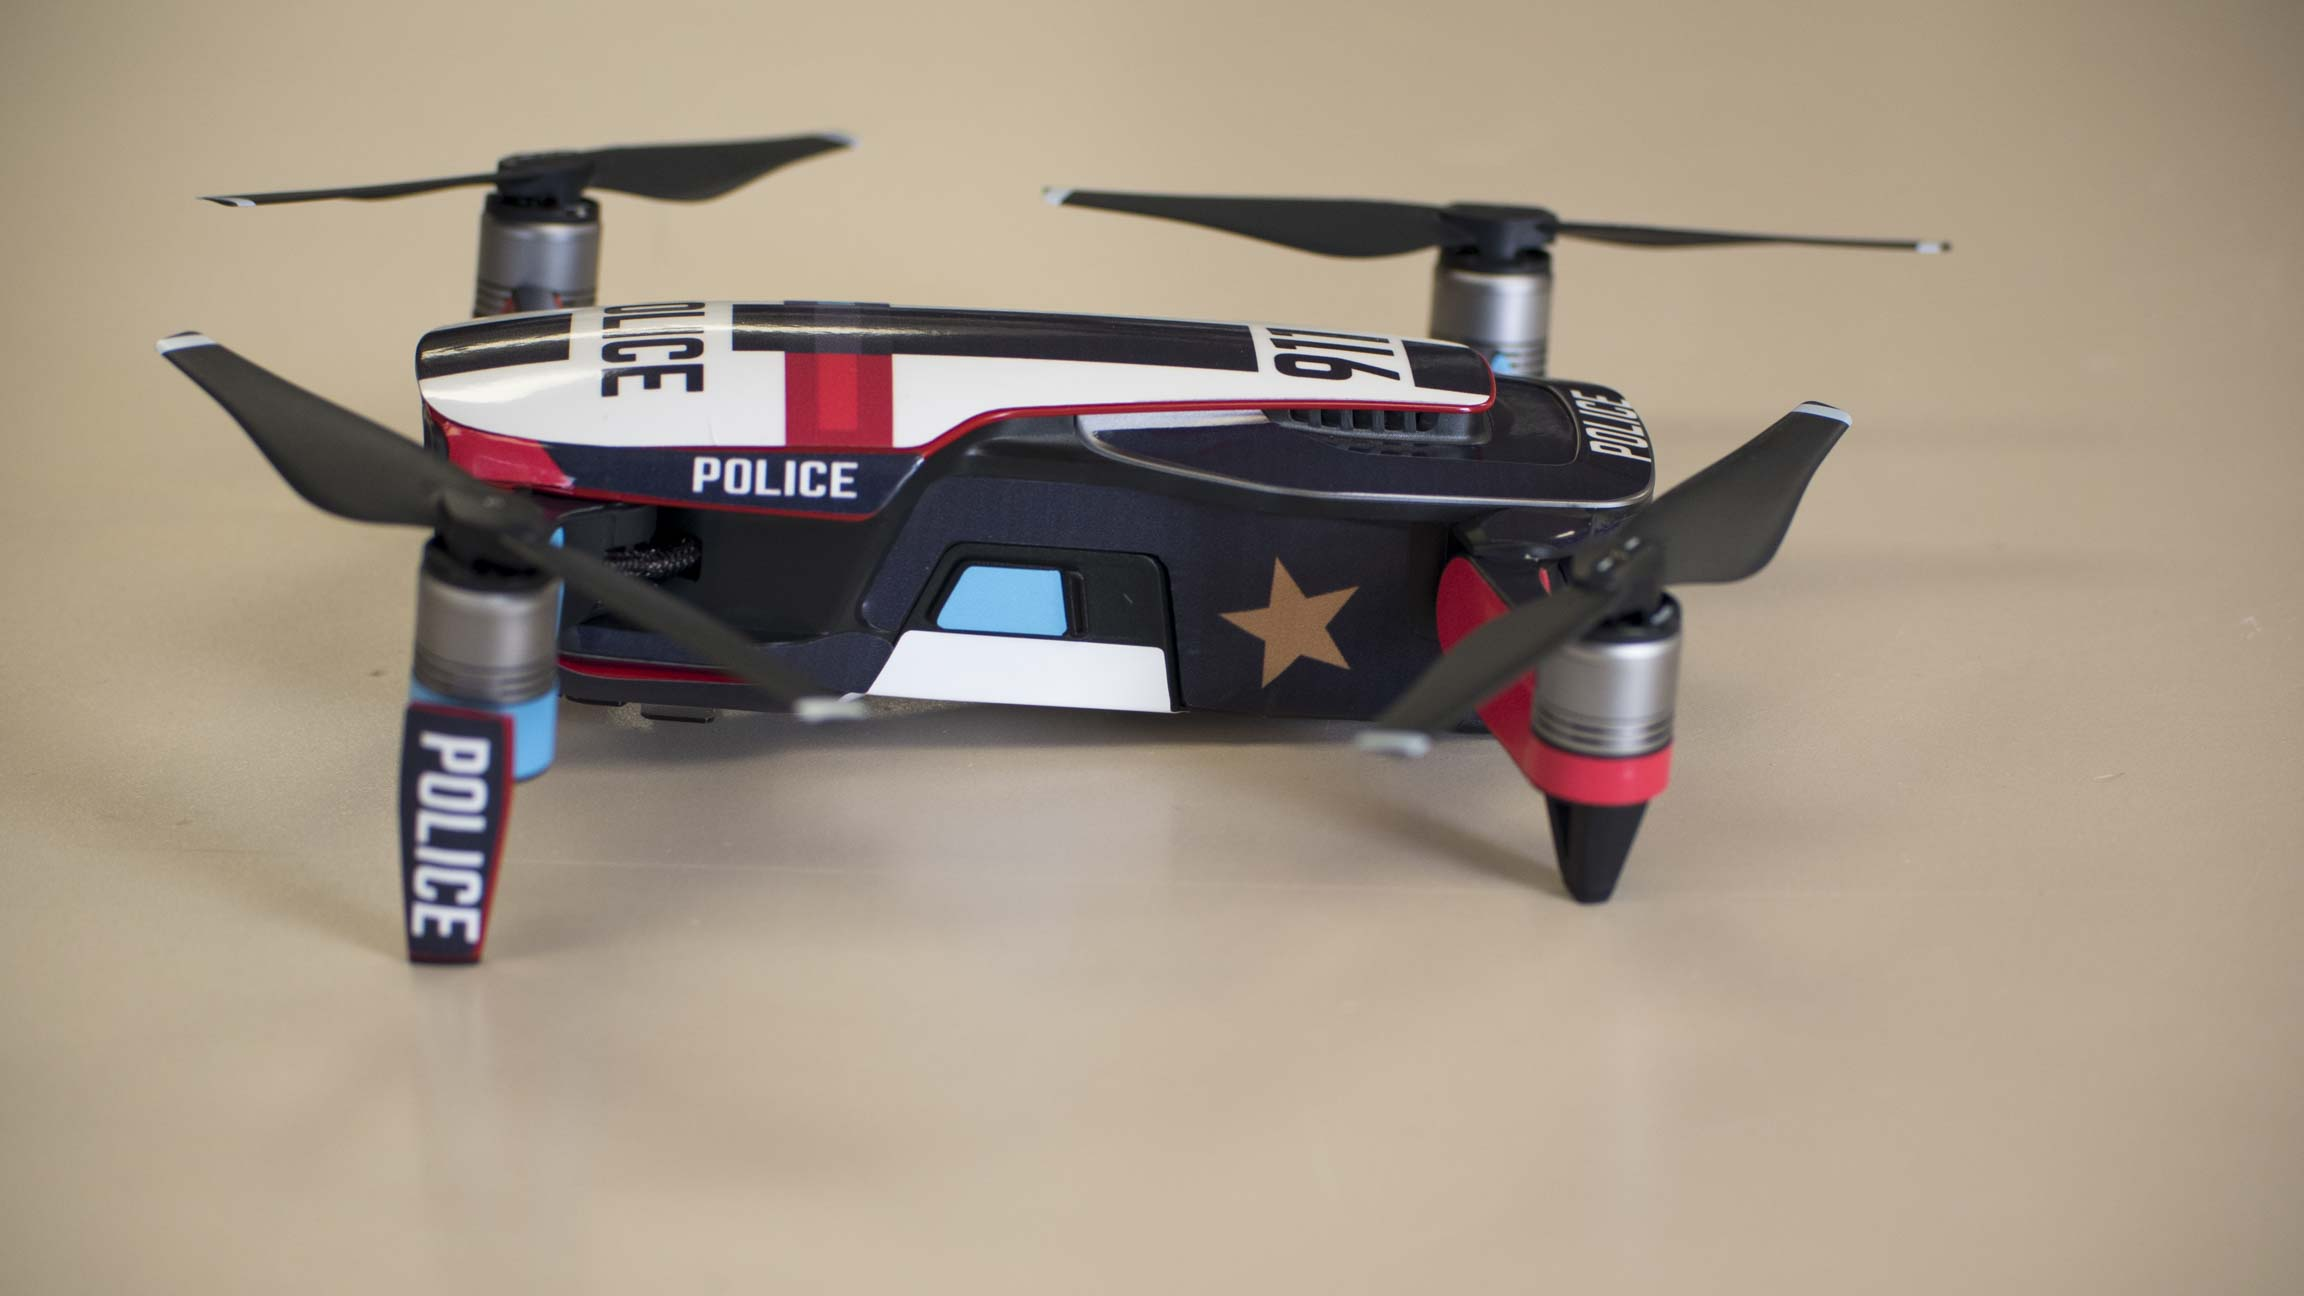 Performance Sportswear 947b9 0b9f3 Phantom 3 Skins Twittercom Dji Mavic Pro Usaf Shark New Photos 8007f Ef052 Air Skin Decal Police Interceptor